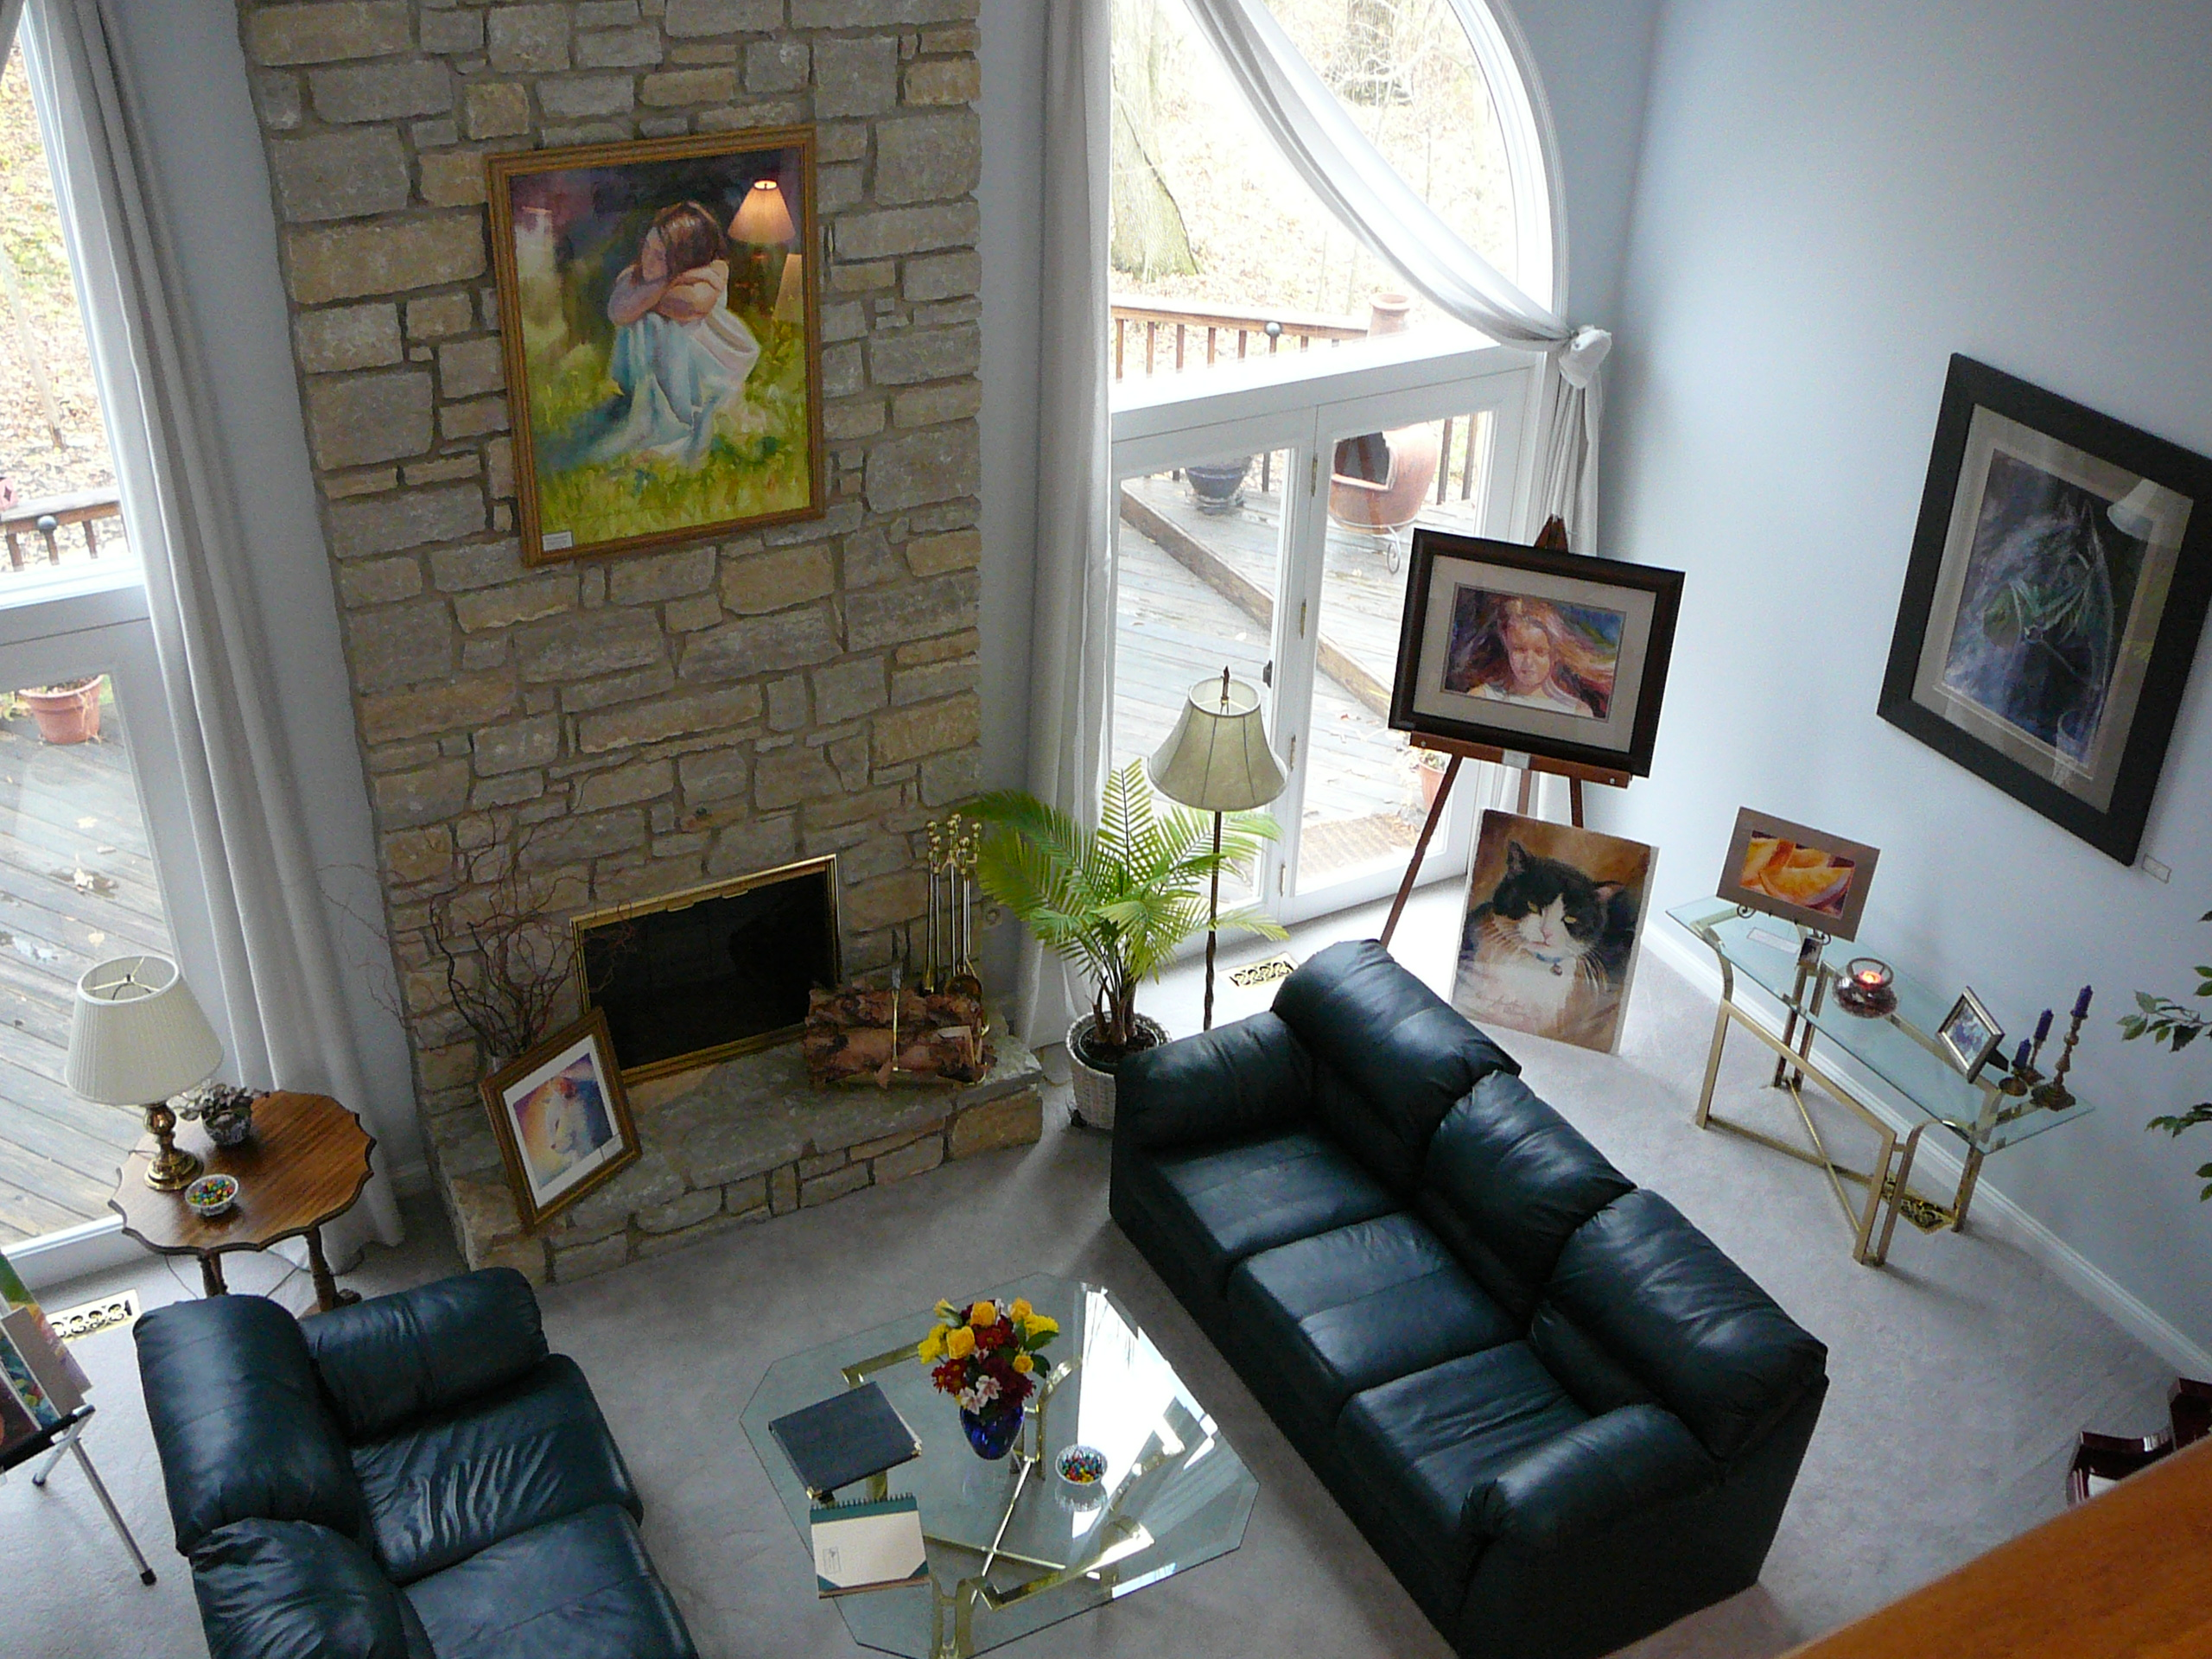 Original watercolors on display in home